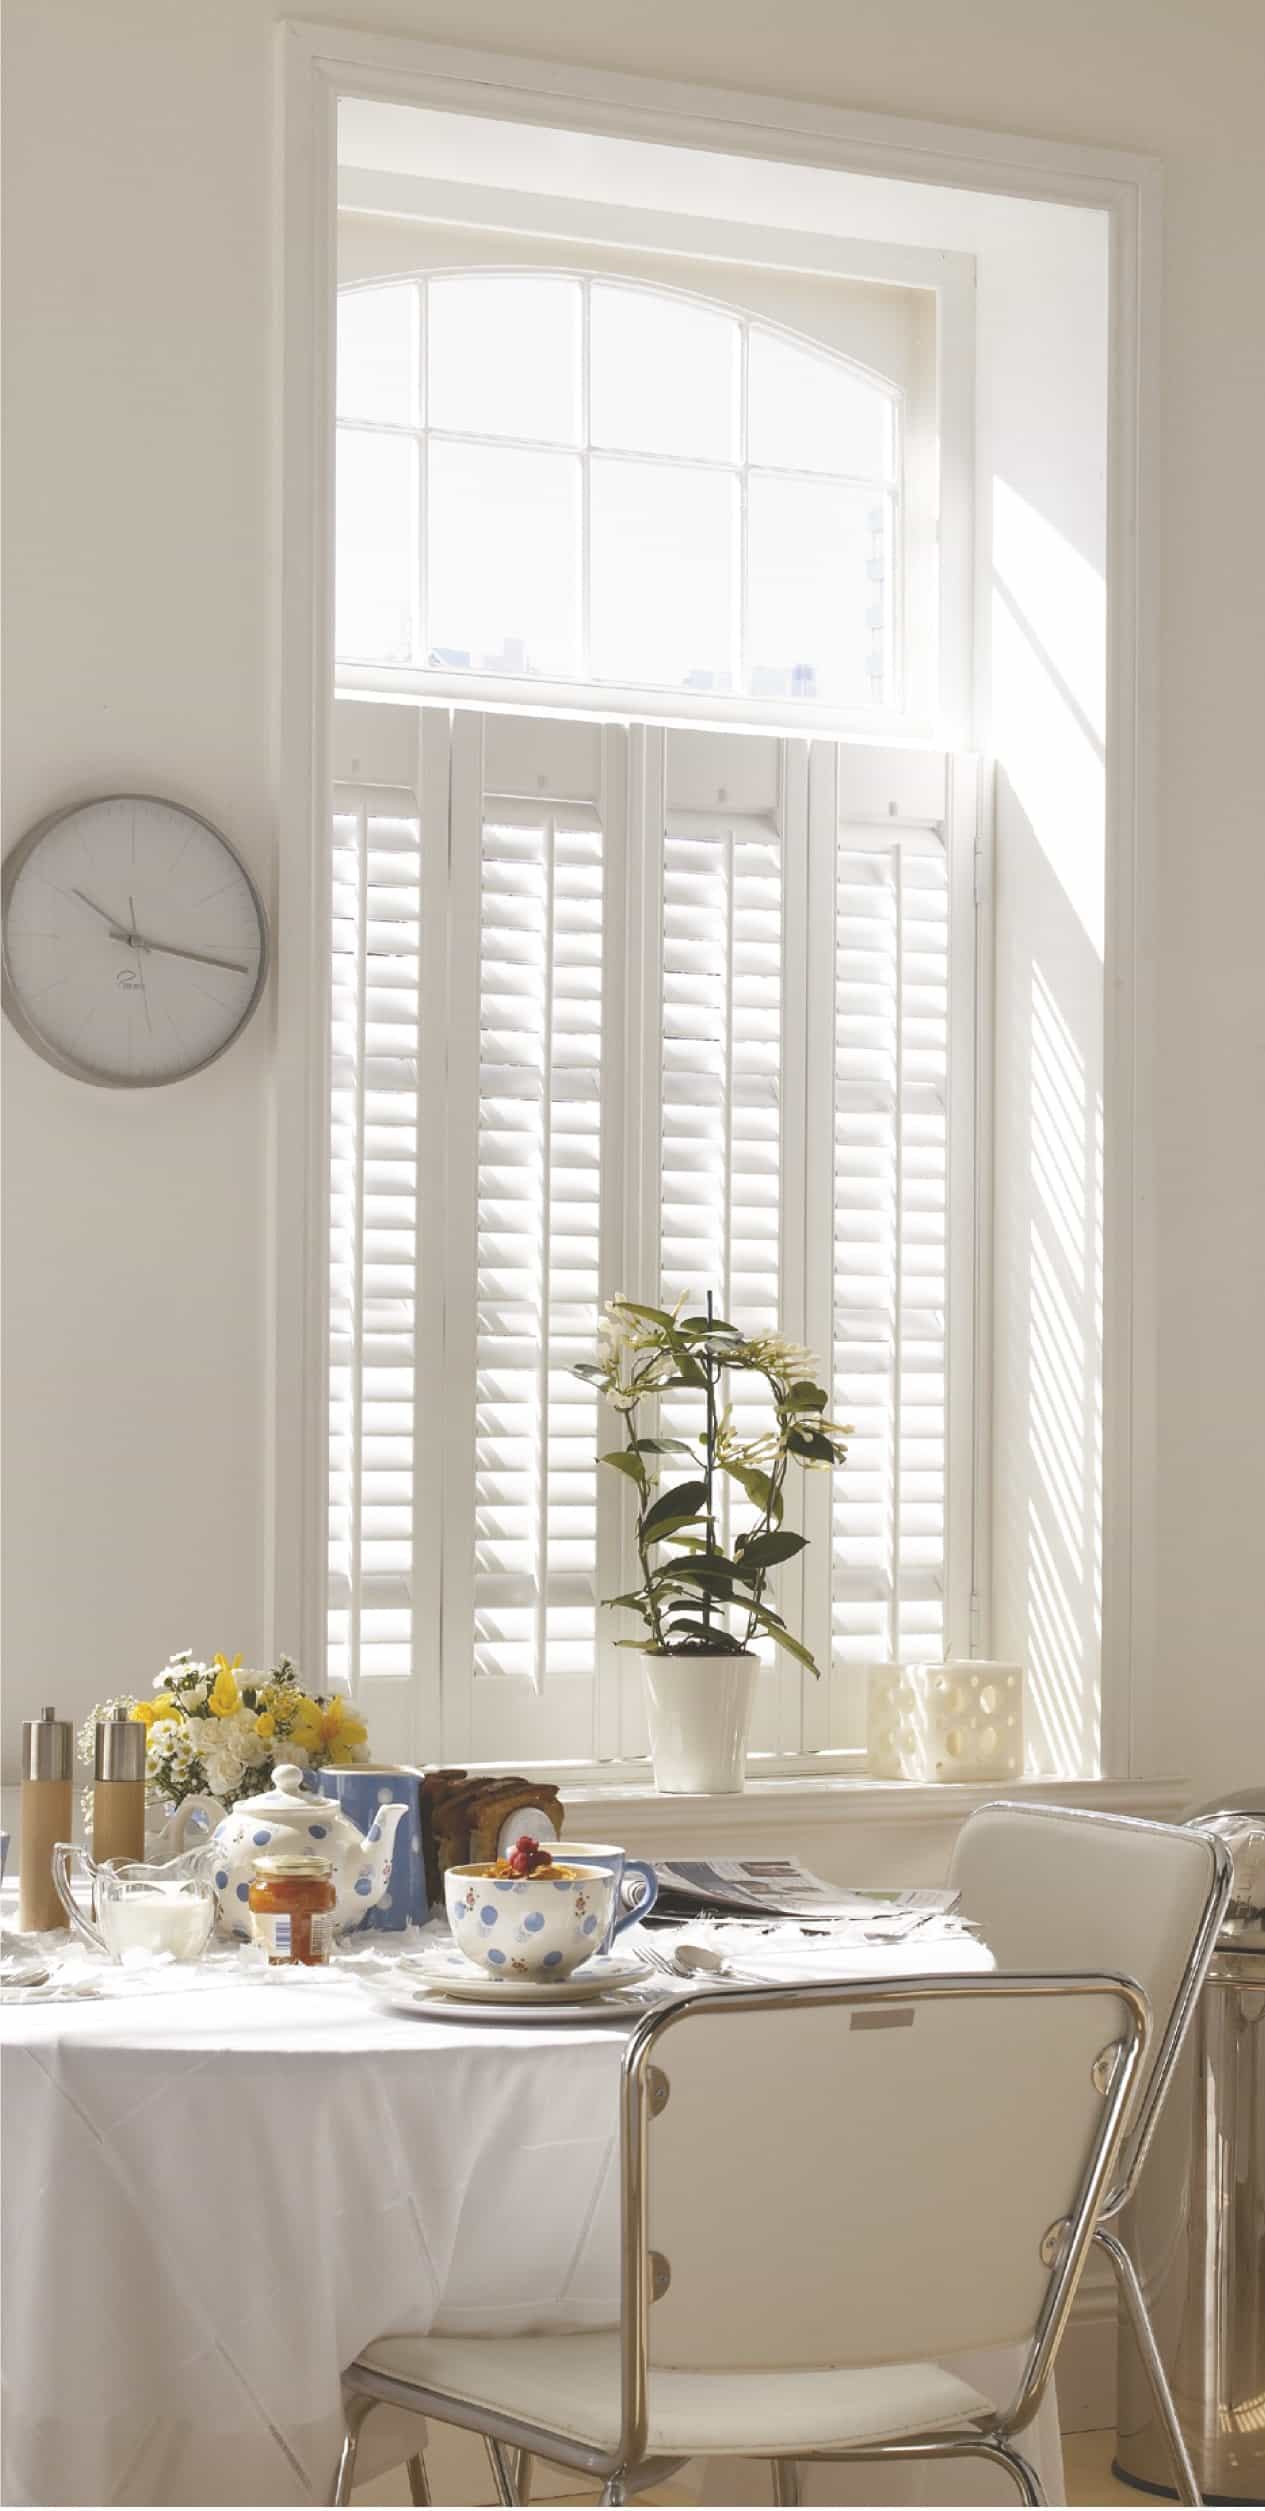 white shutter blind on window in Whitley Bay